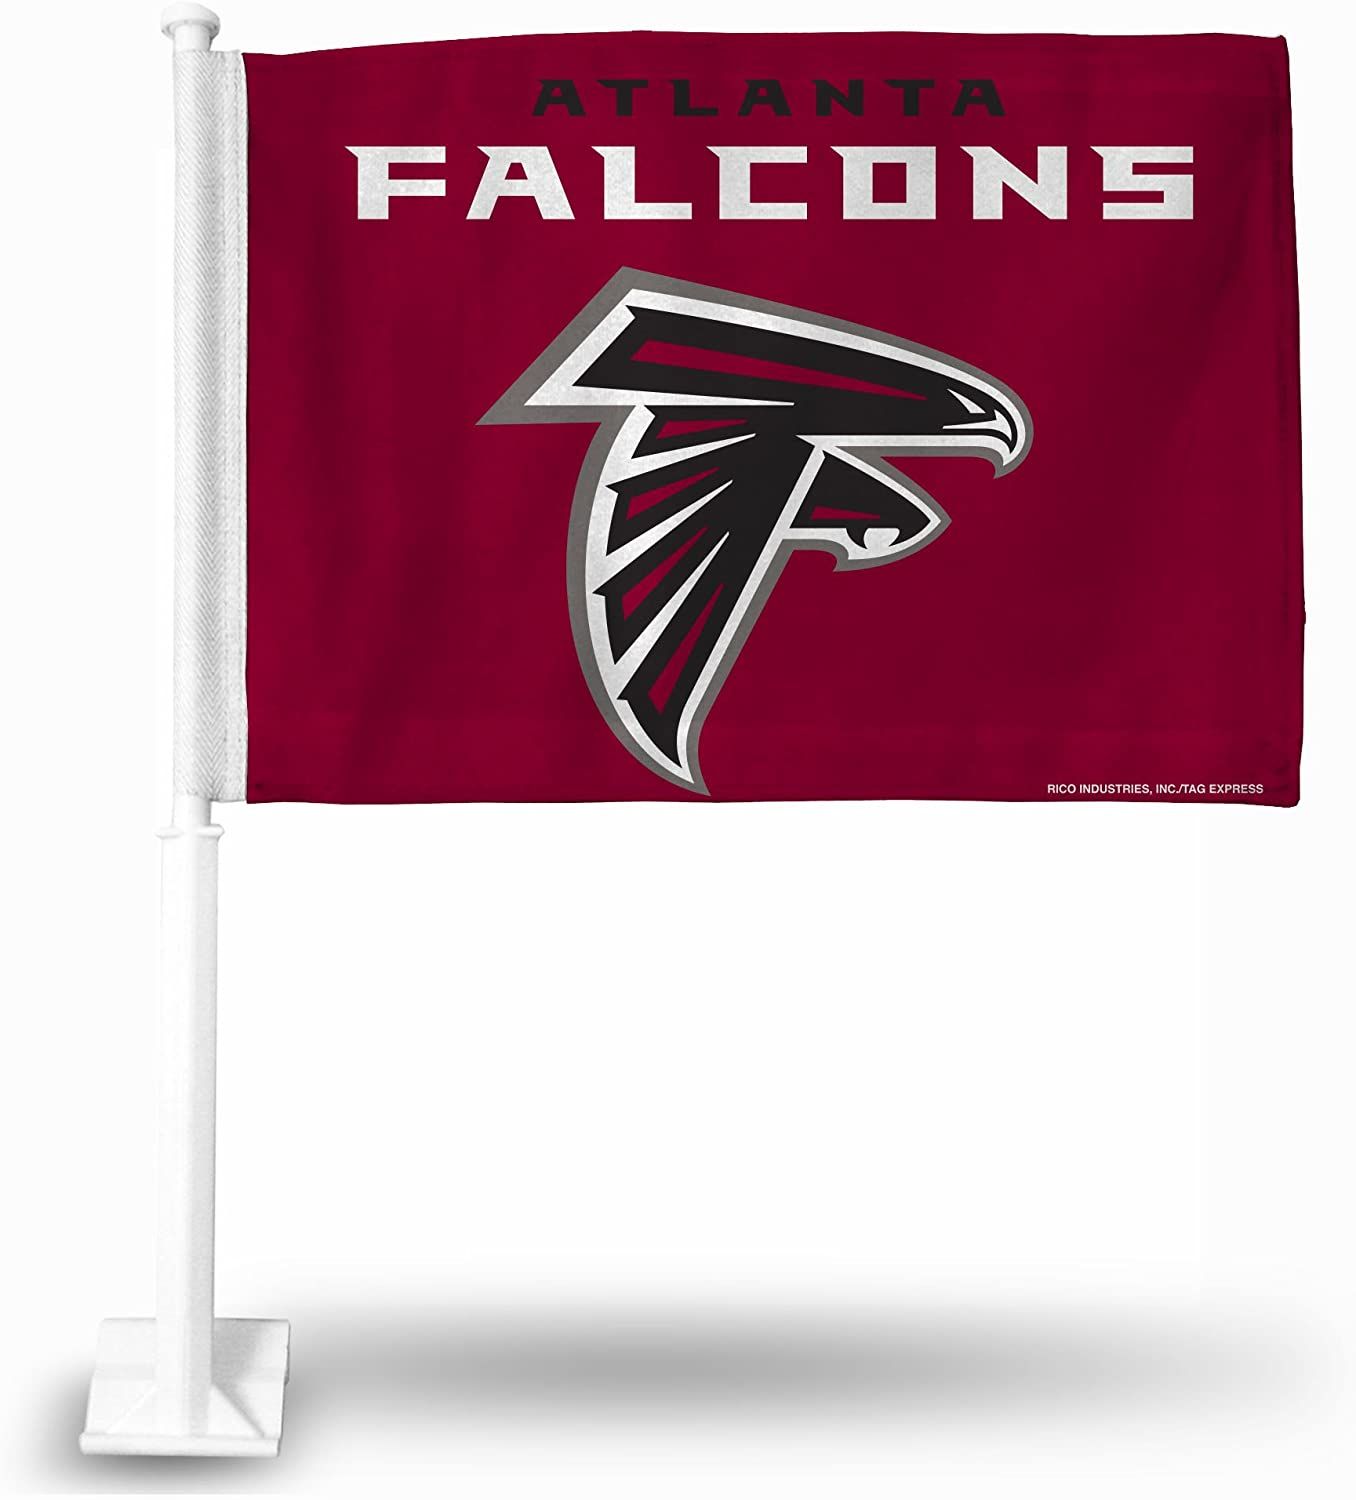 Rico Industries Atlanta Falcons Red Background Car Flag Atlanta Falcons Red Background Car Flag